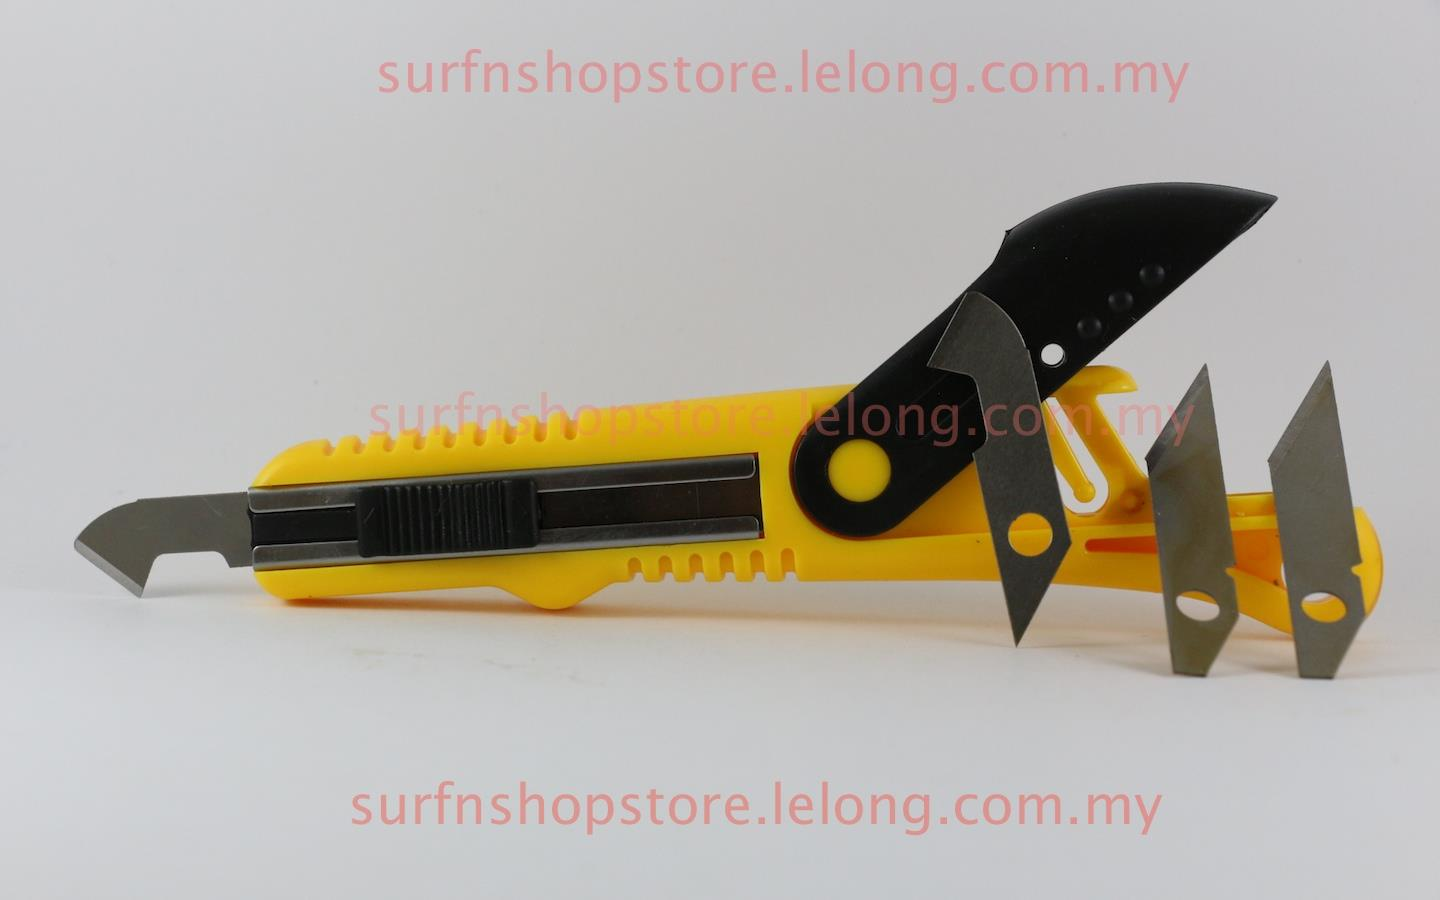 Fei Long FL-80 Plastic Board Cutter Knife